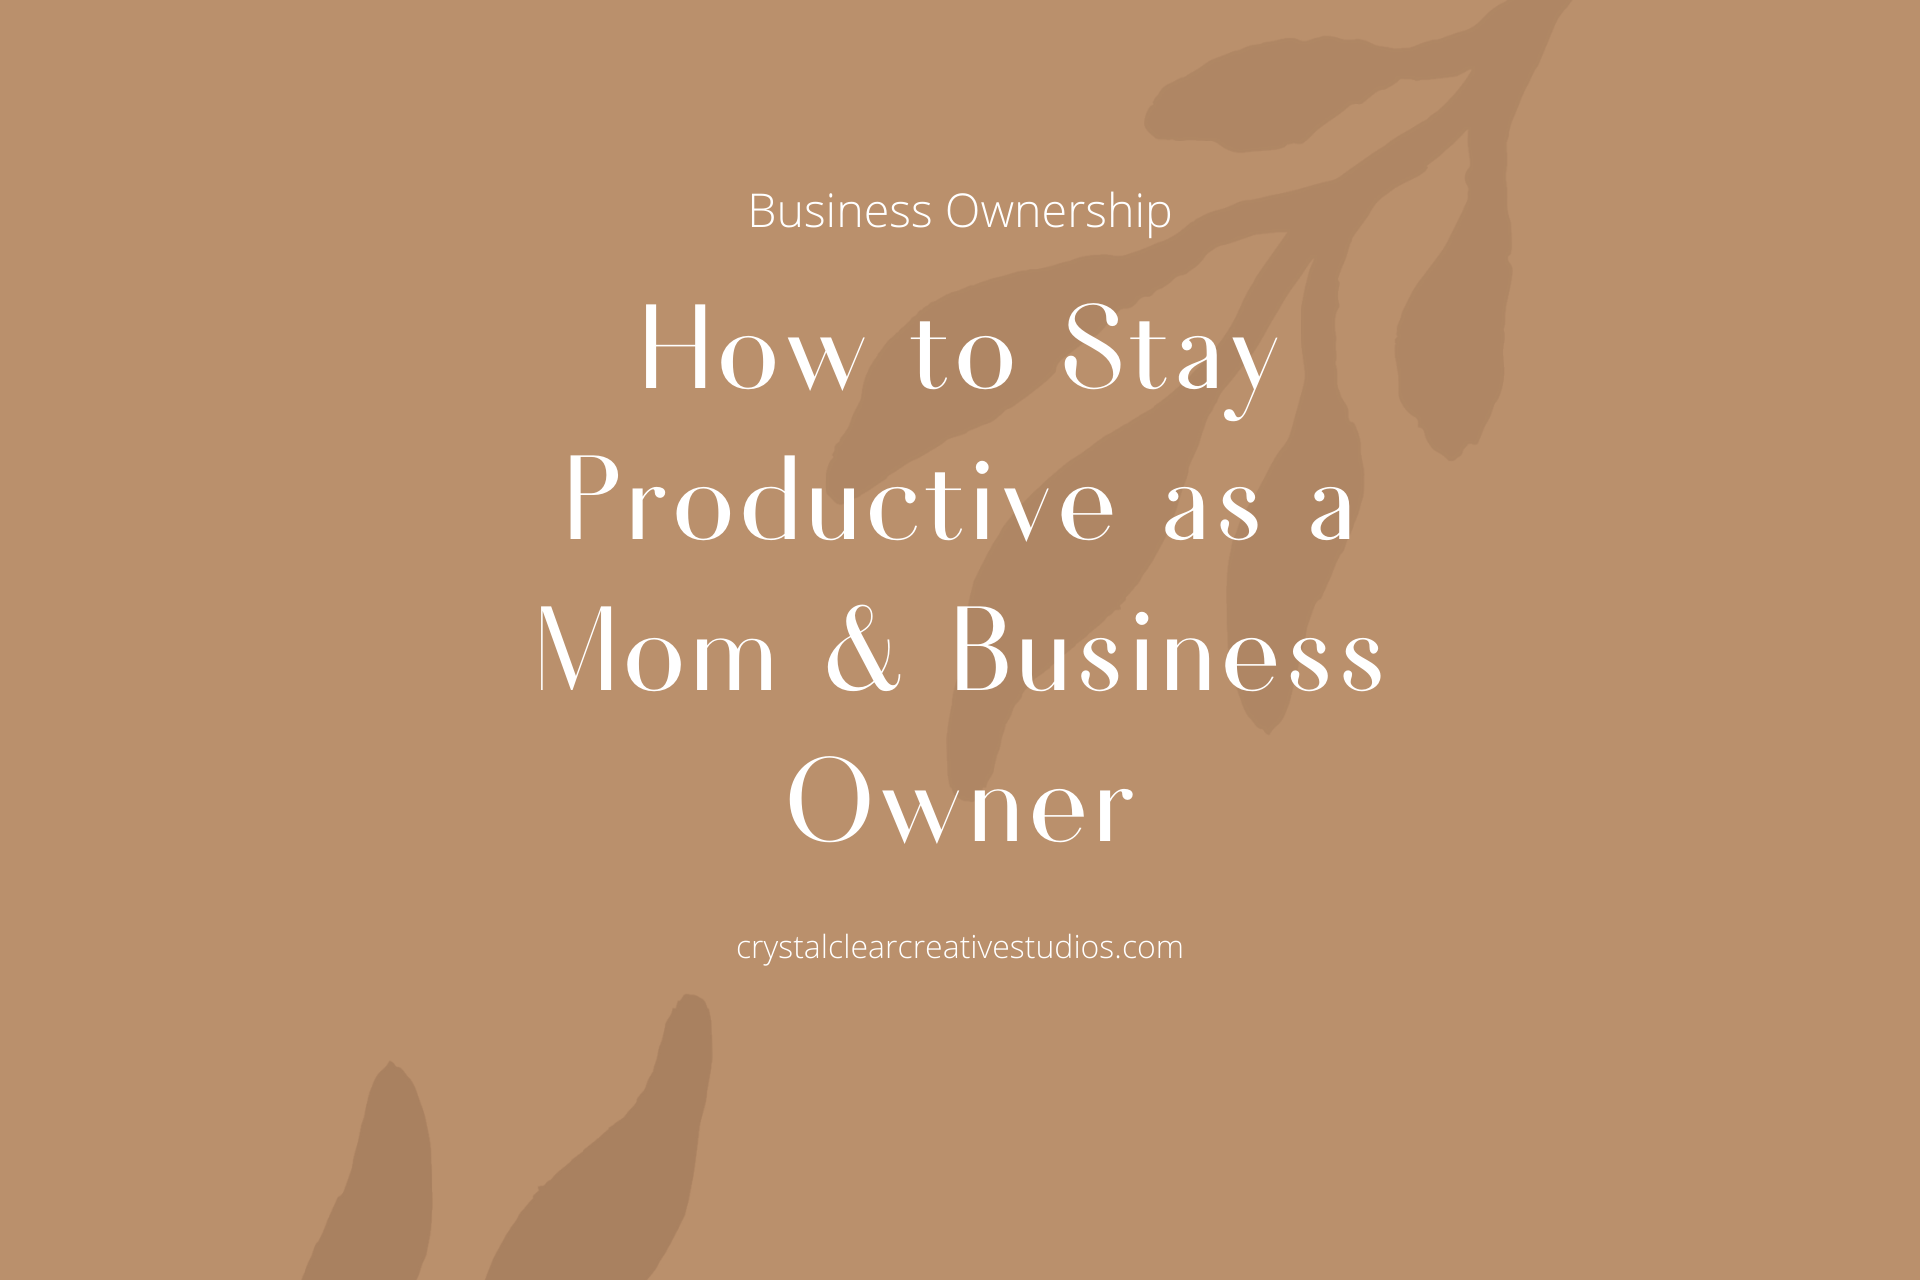 How to Stay Productive as a Mom and Business Owner